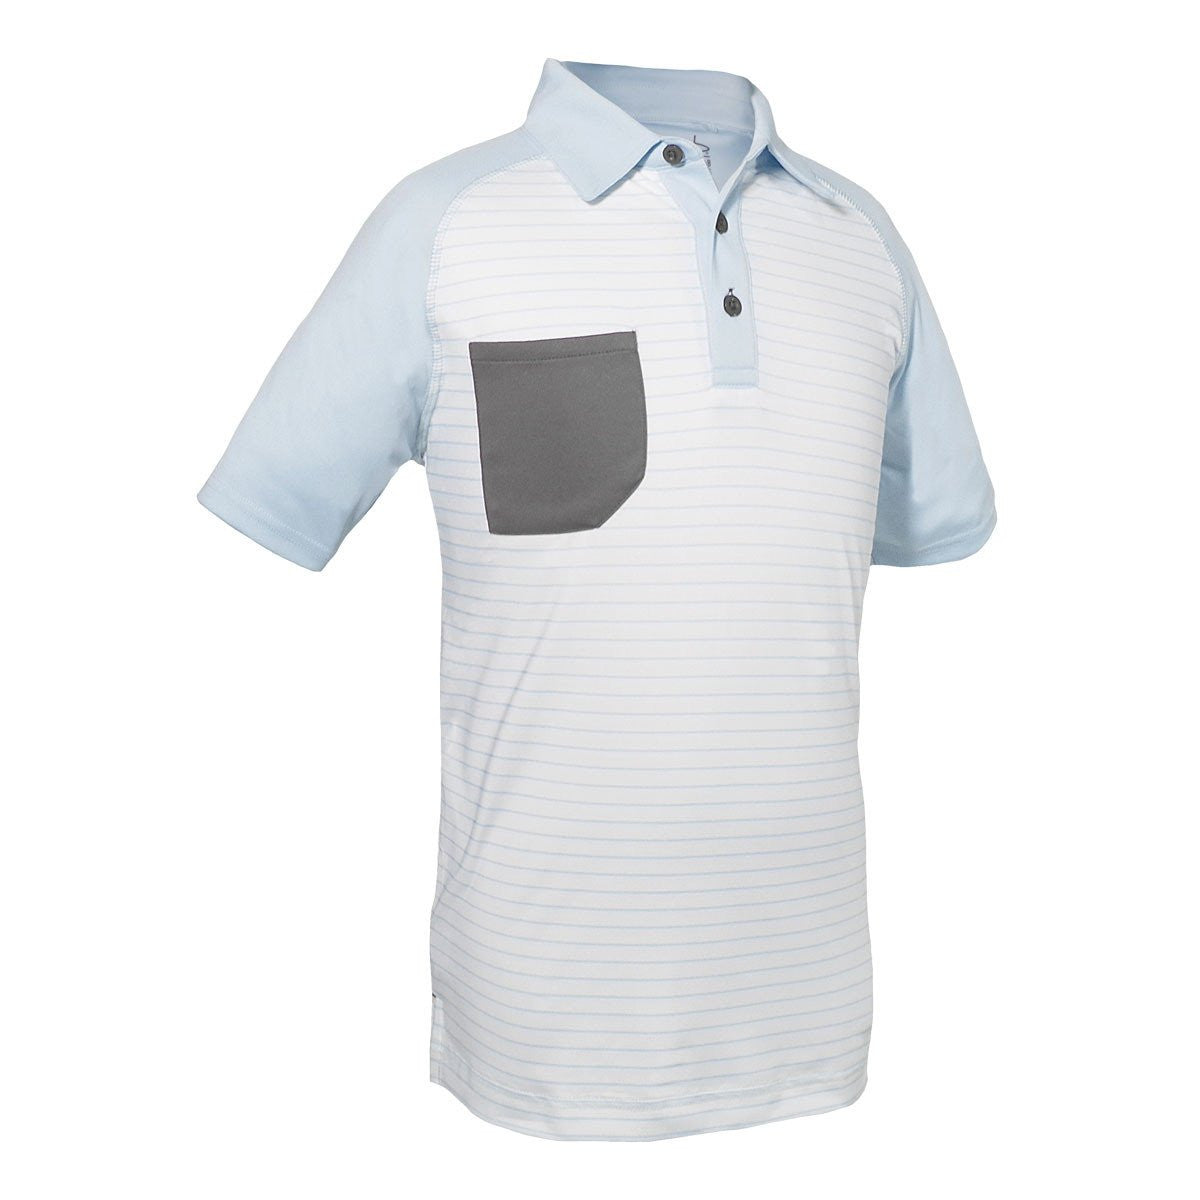 Bryson - Boy's Golf Polo